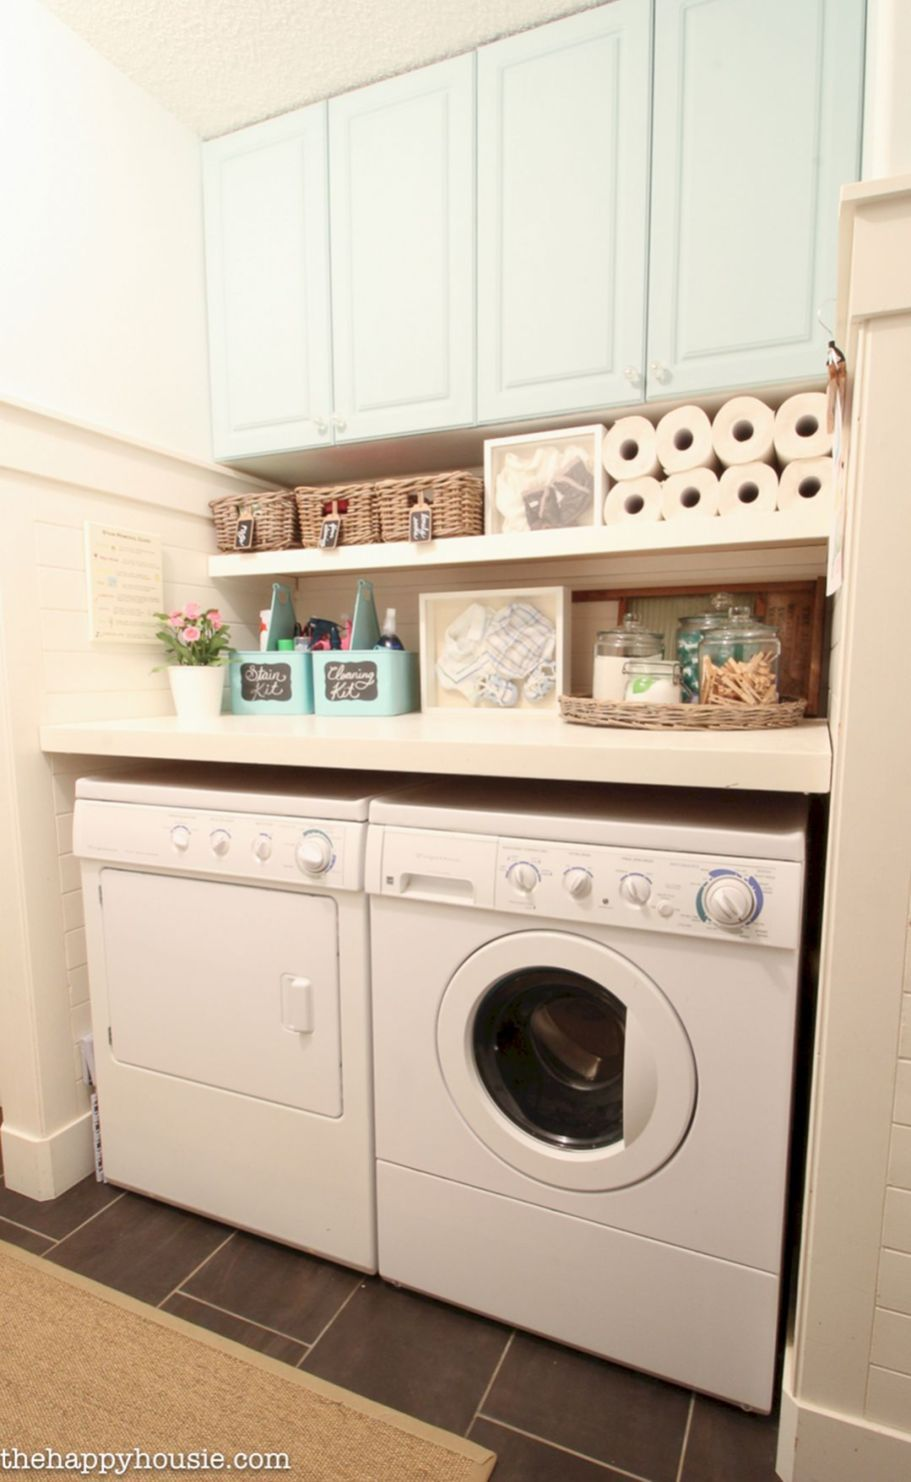 43+ Beautiful Laundry Room Design Ideas For Your Home | Laundry ...